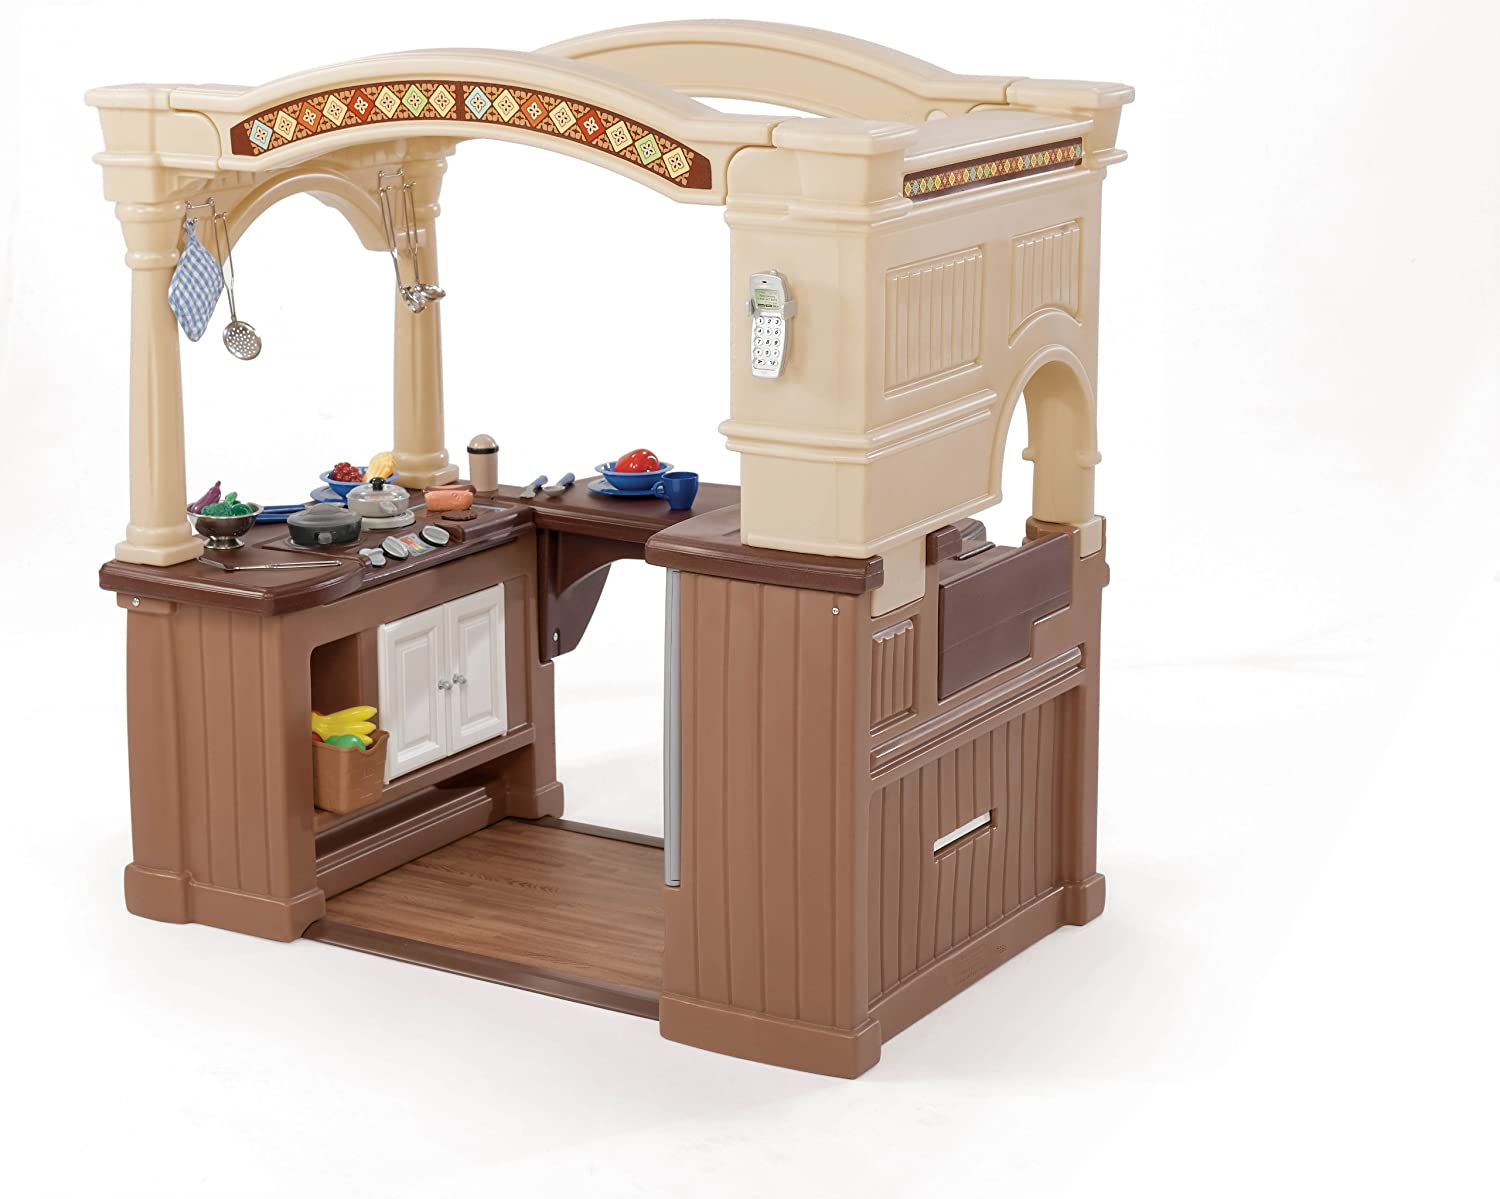 Step2 Lifestyle Grand Walk In Kitchen Amazoncouk Toys Games